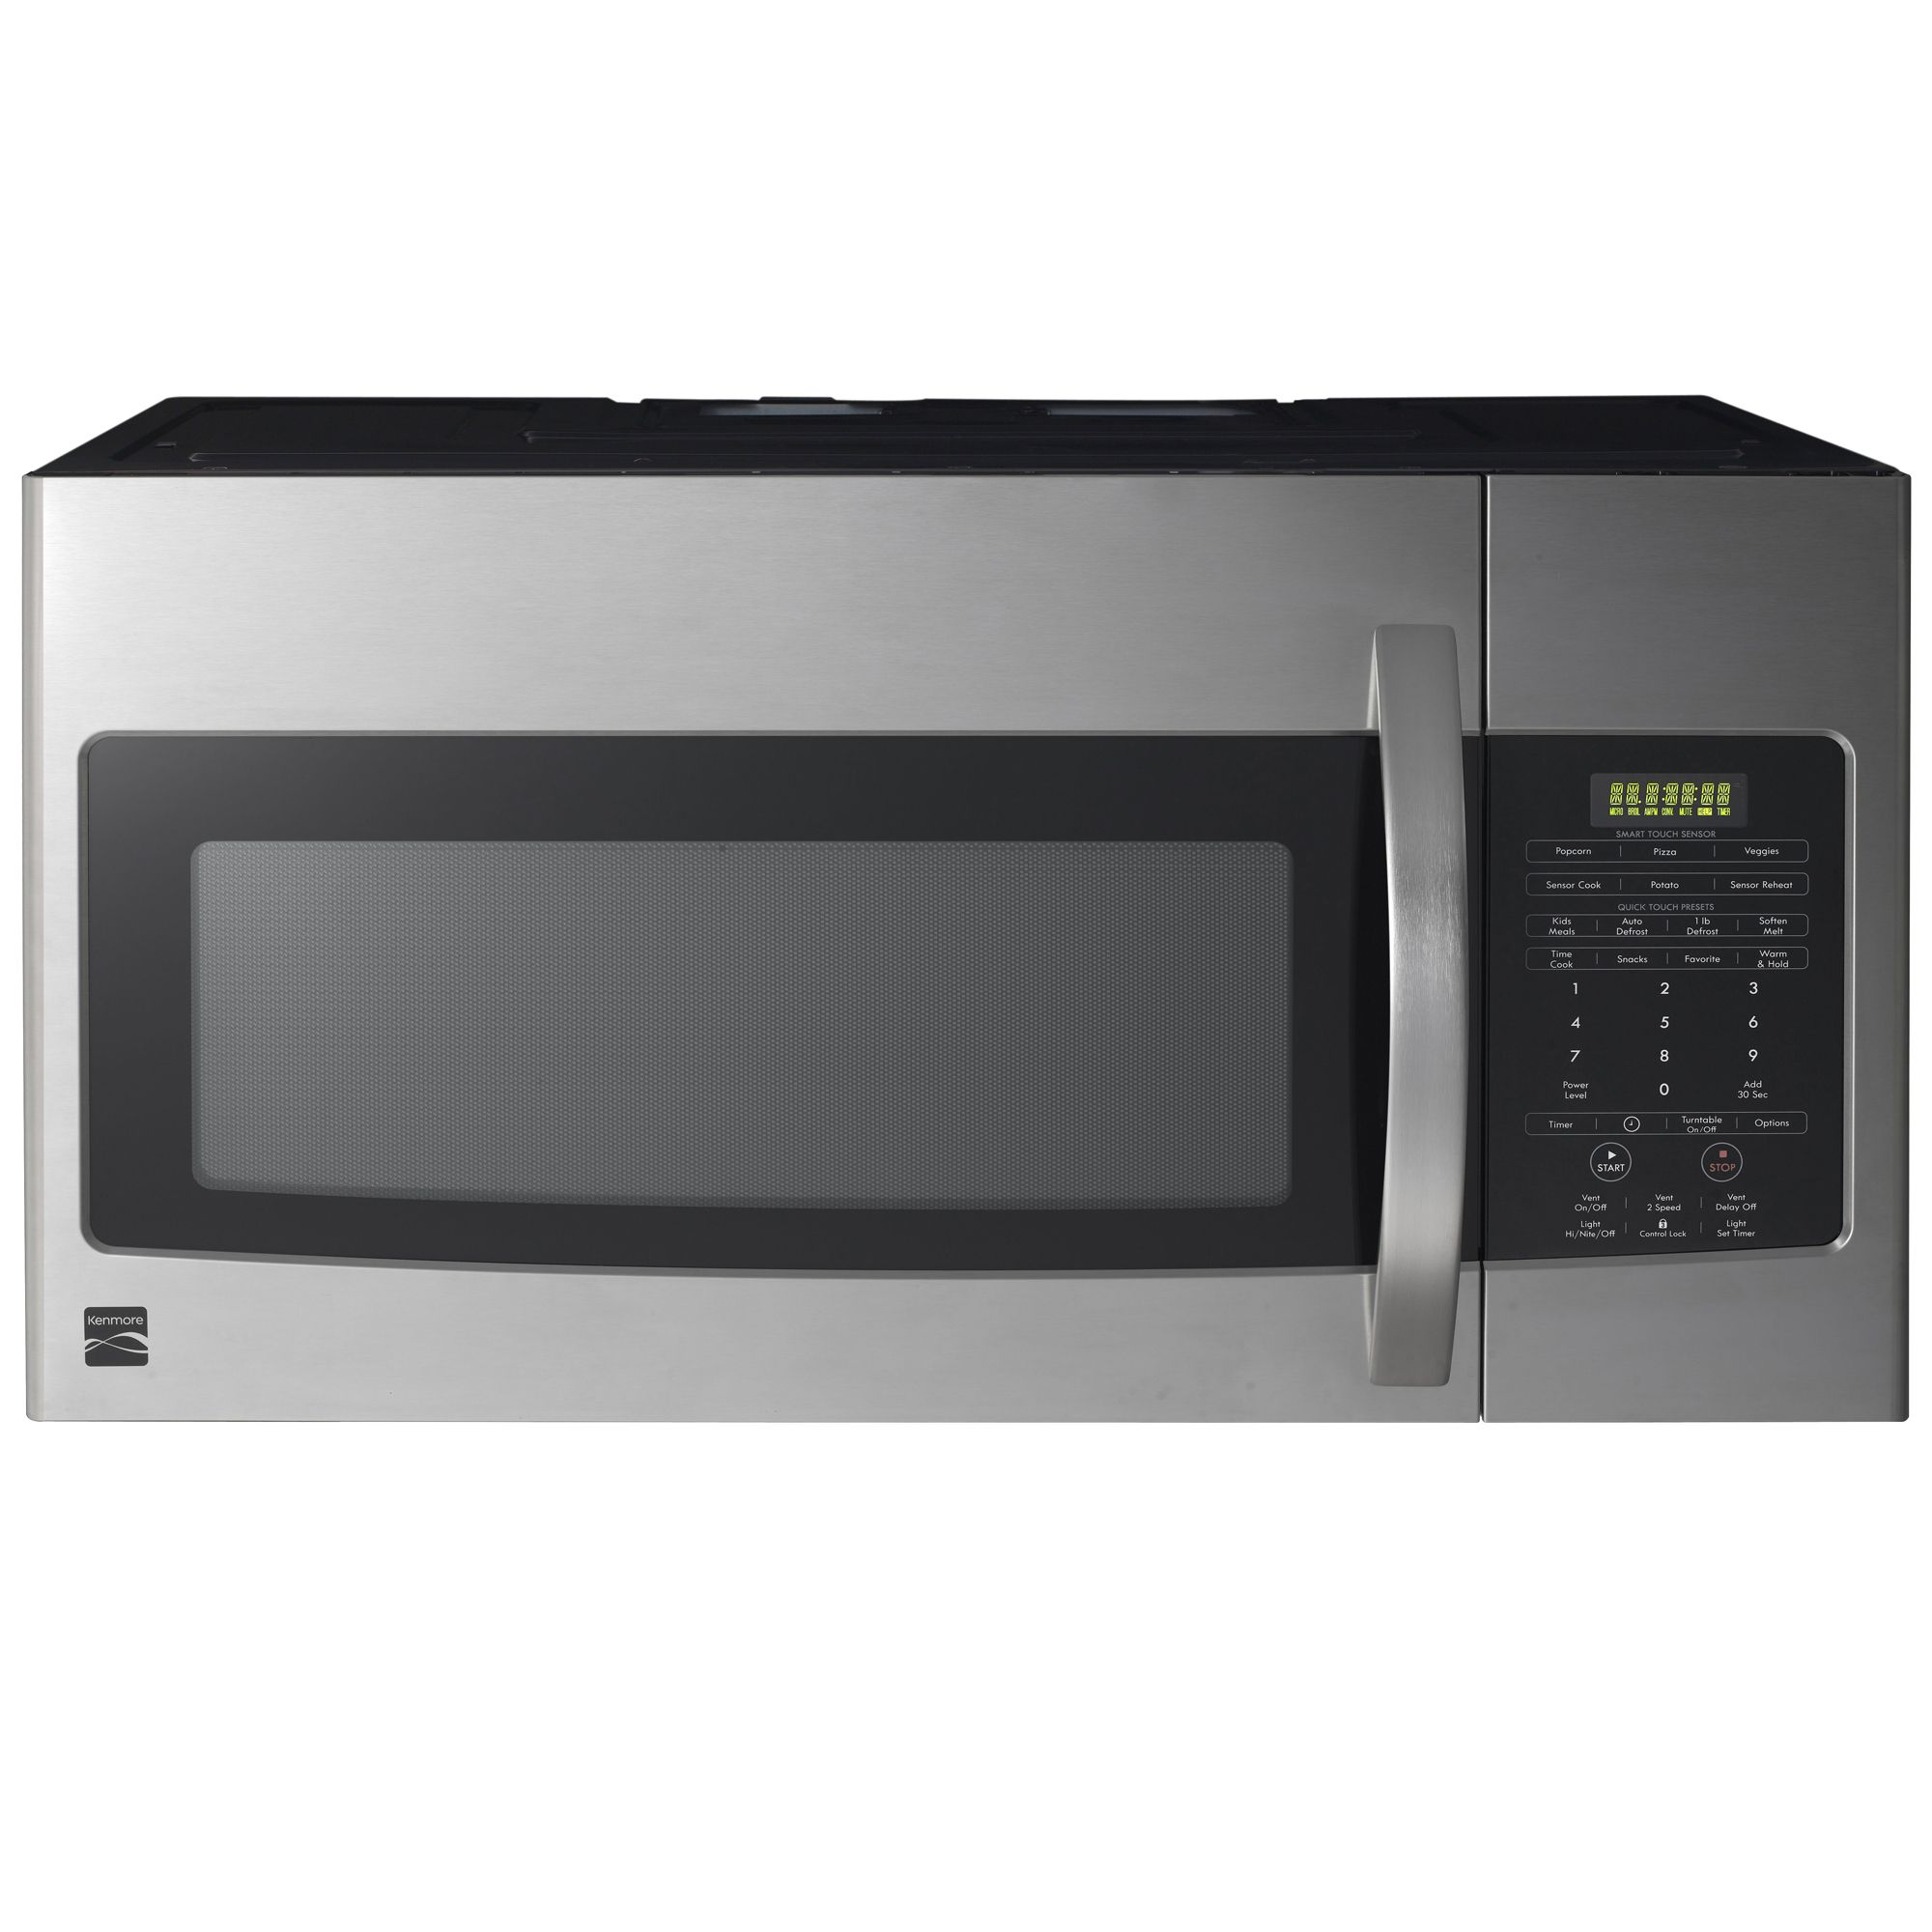 kenmore 85043 1 7 cu ft over the range microwave oven stainless steel